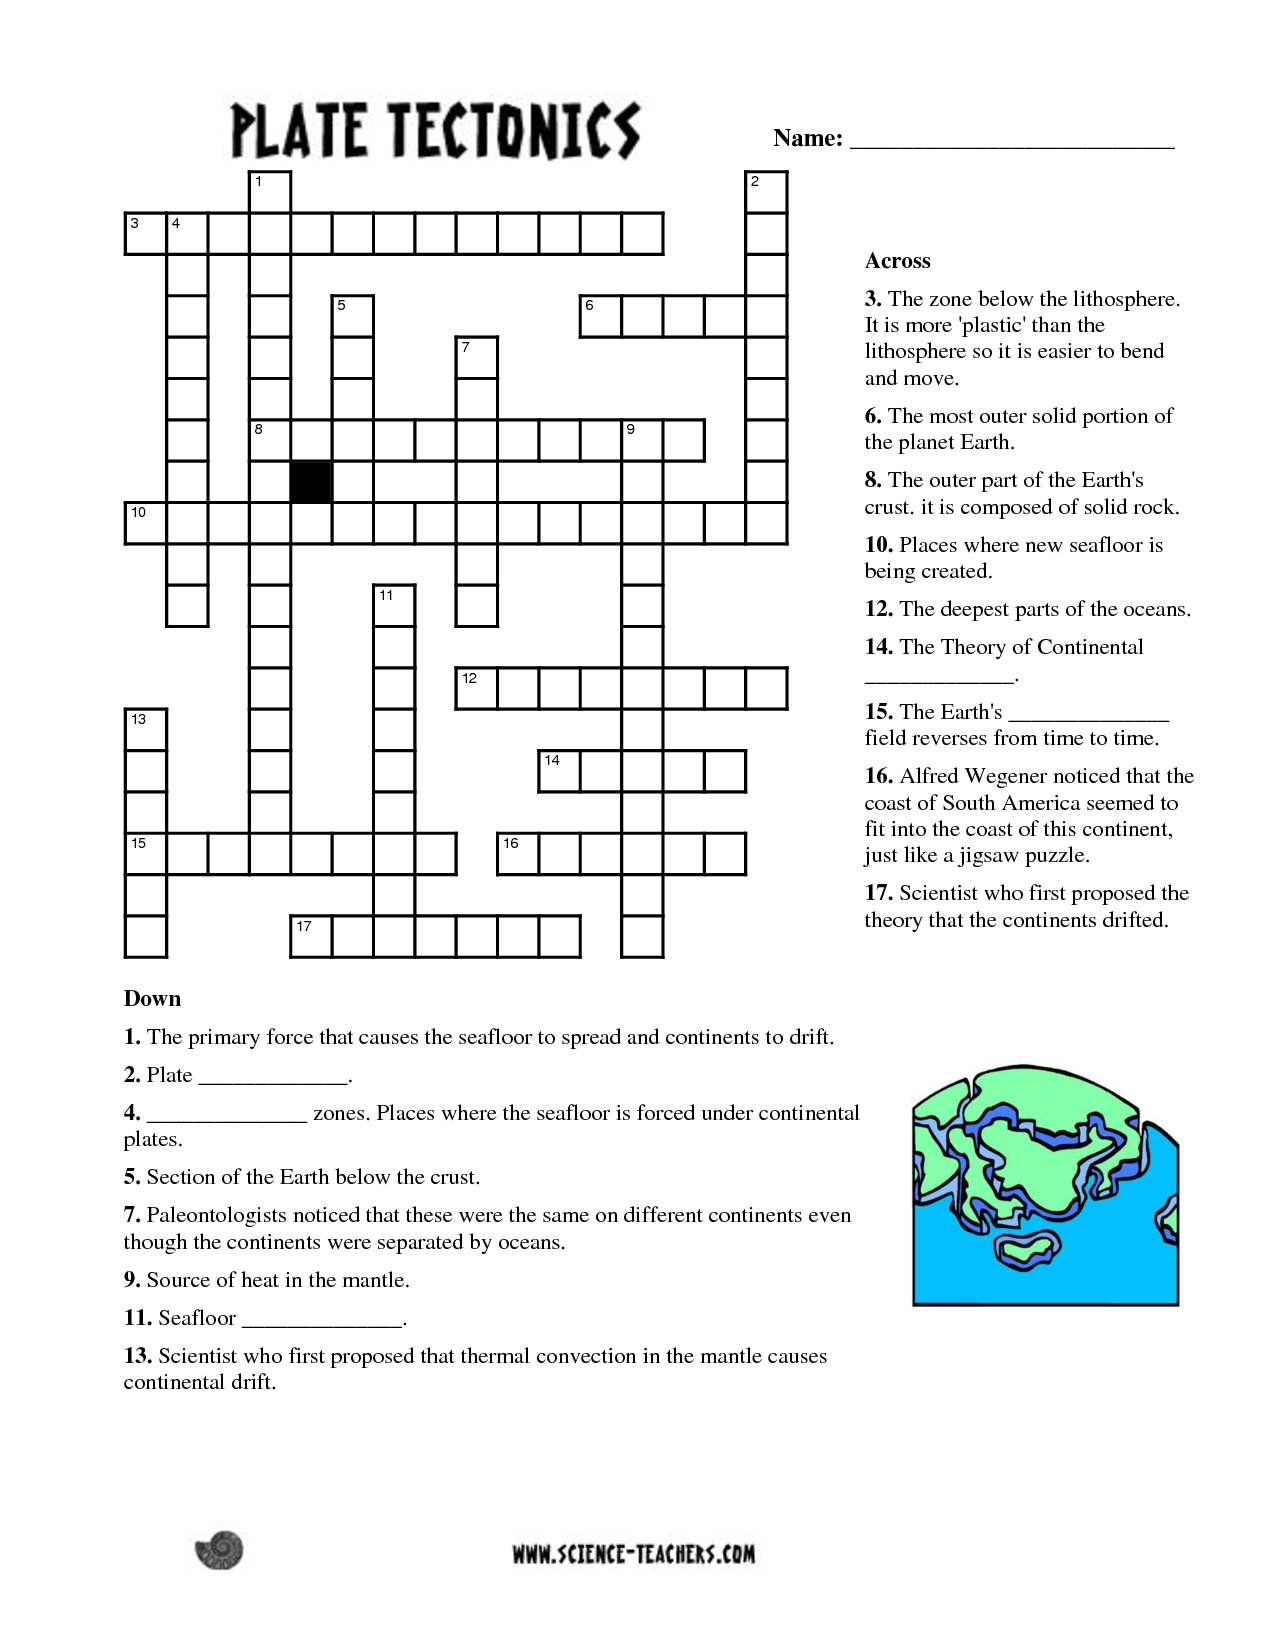 Planets Crossword Puzzle Worksheet